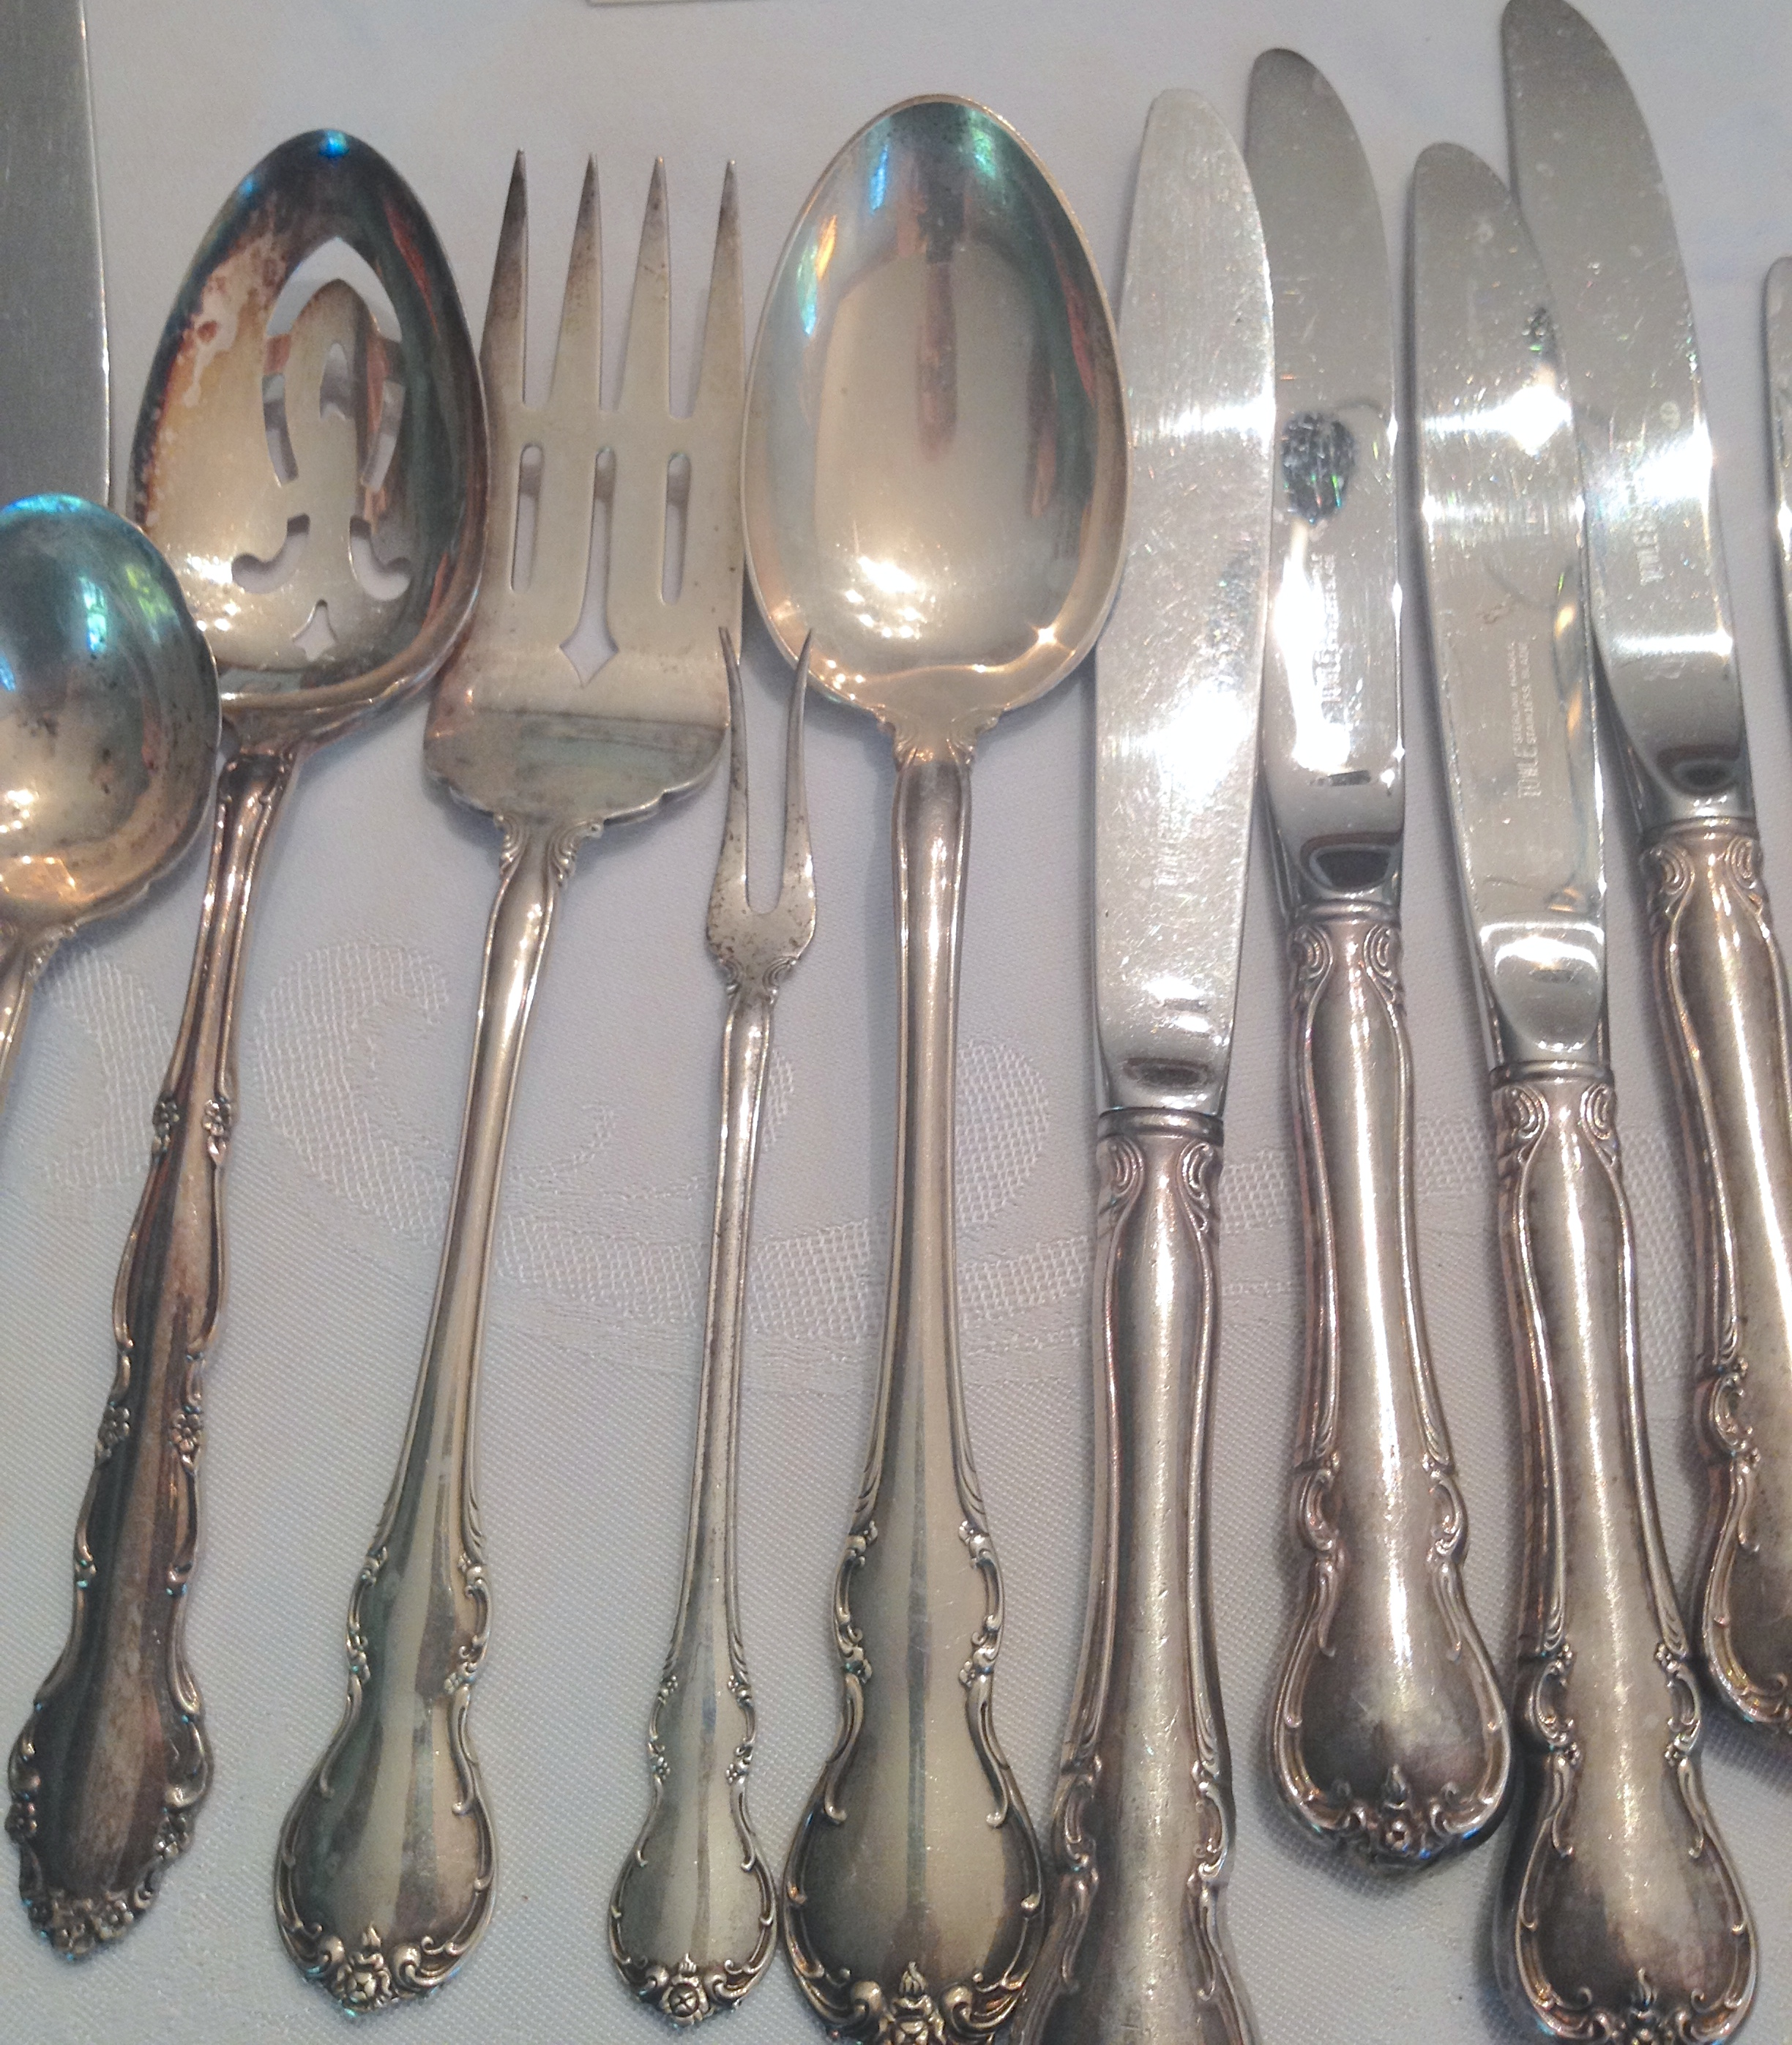 towle sterling silver flatware silverware set 46 pcs image 5 of 10